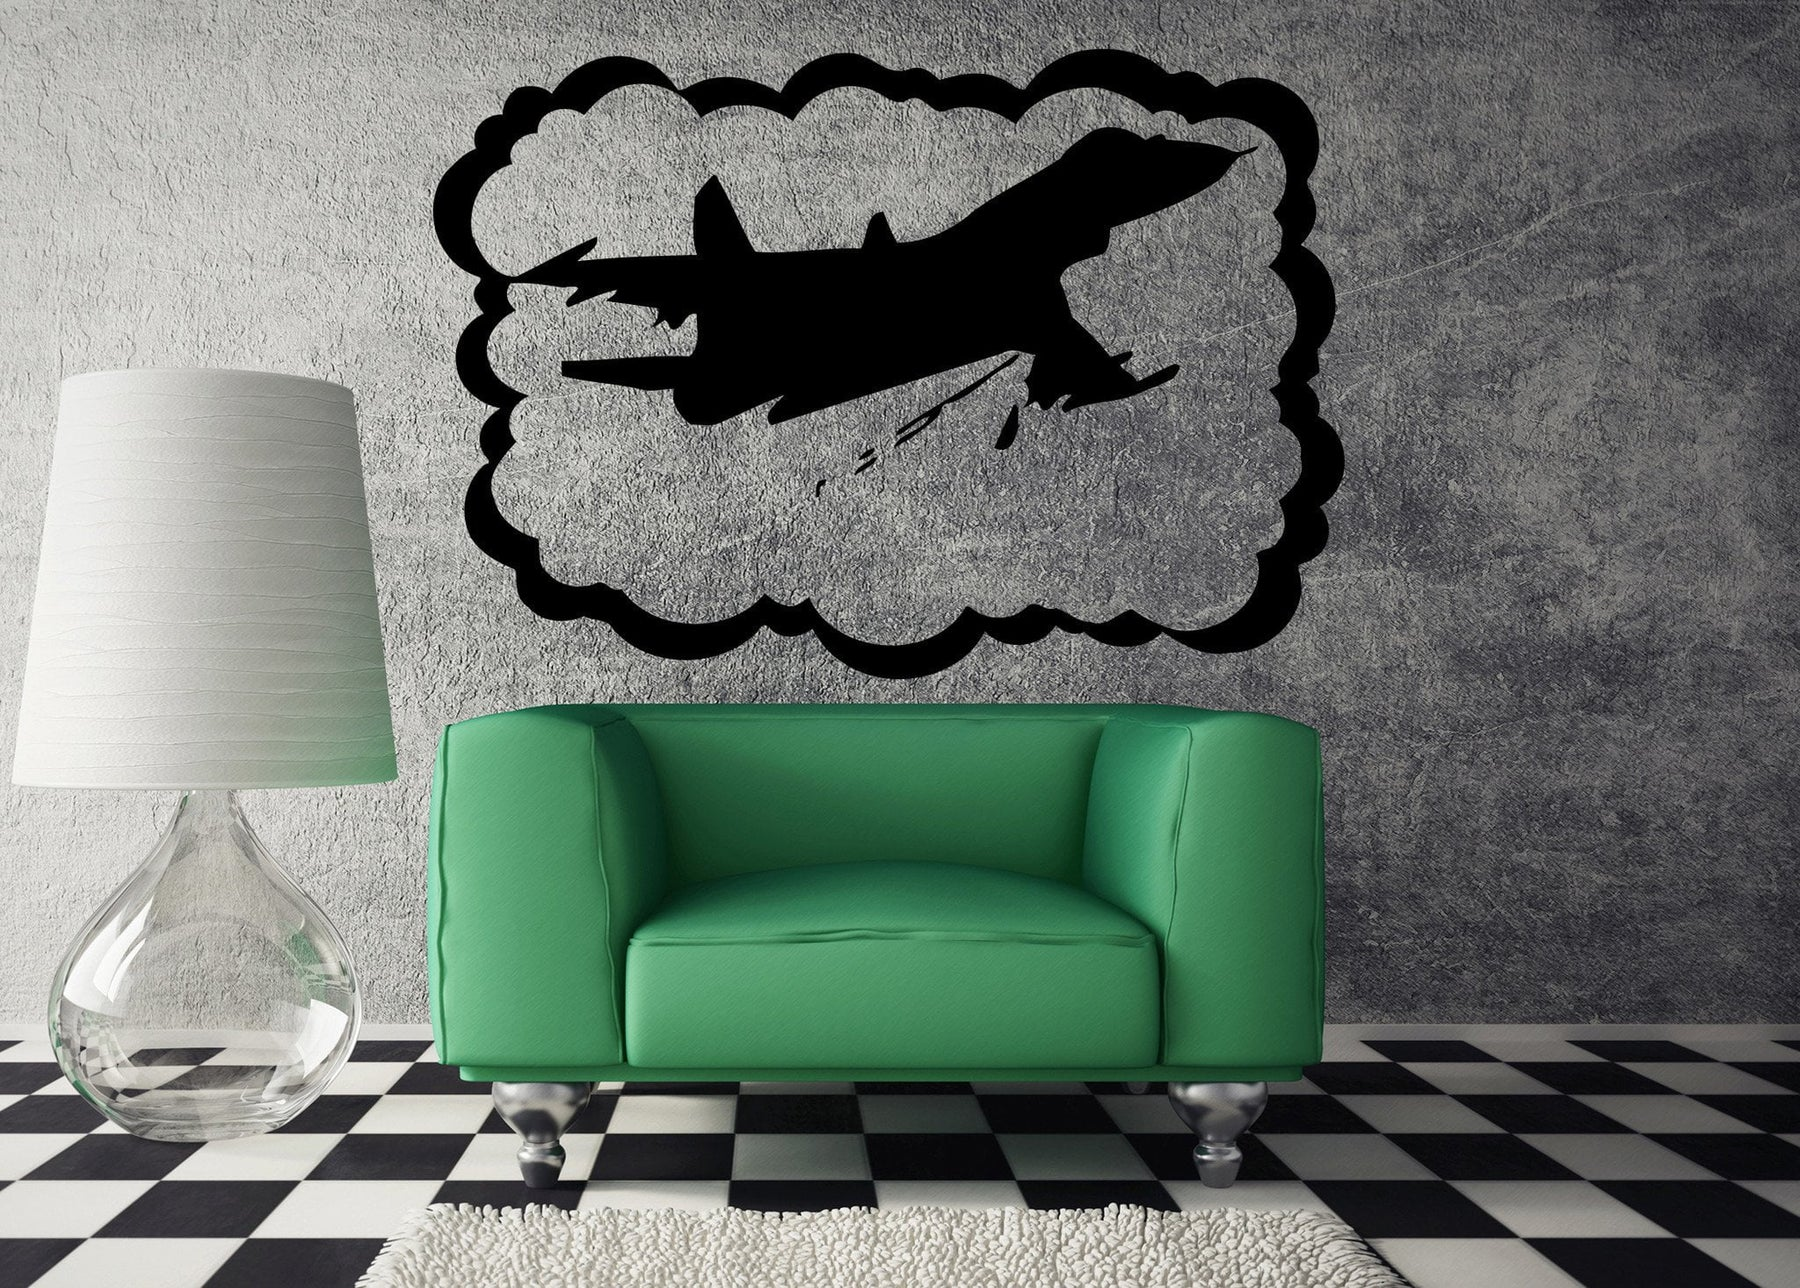 Vinyl Decal Airplane Airforce Jet Aviation Military Art Mural Wall Decor Sticker Boy's Children's Room Nursery Decoration Unique Gift (z553)